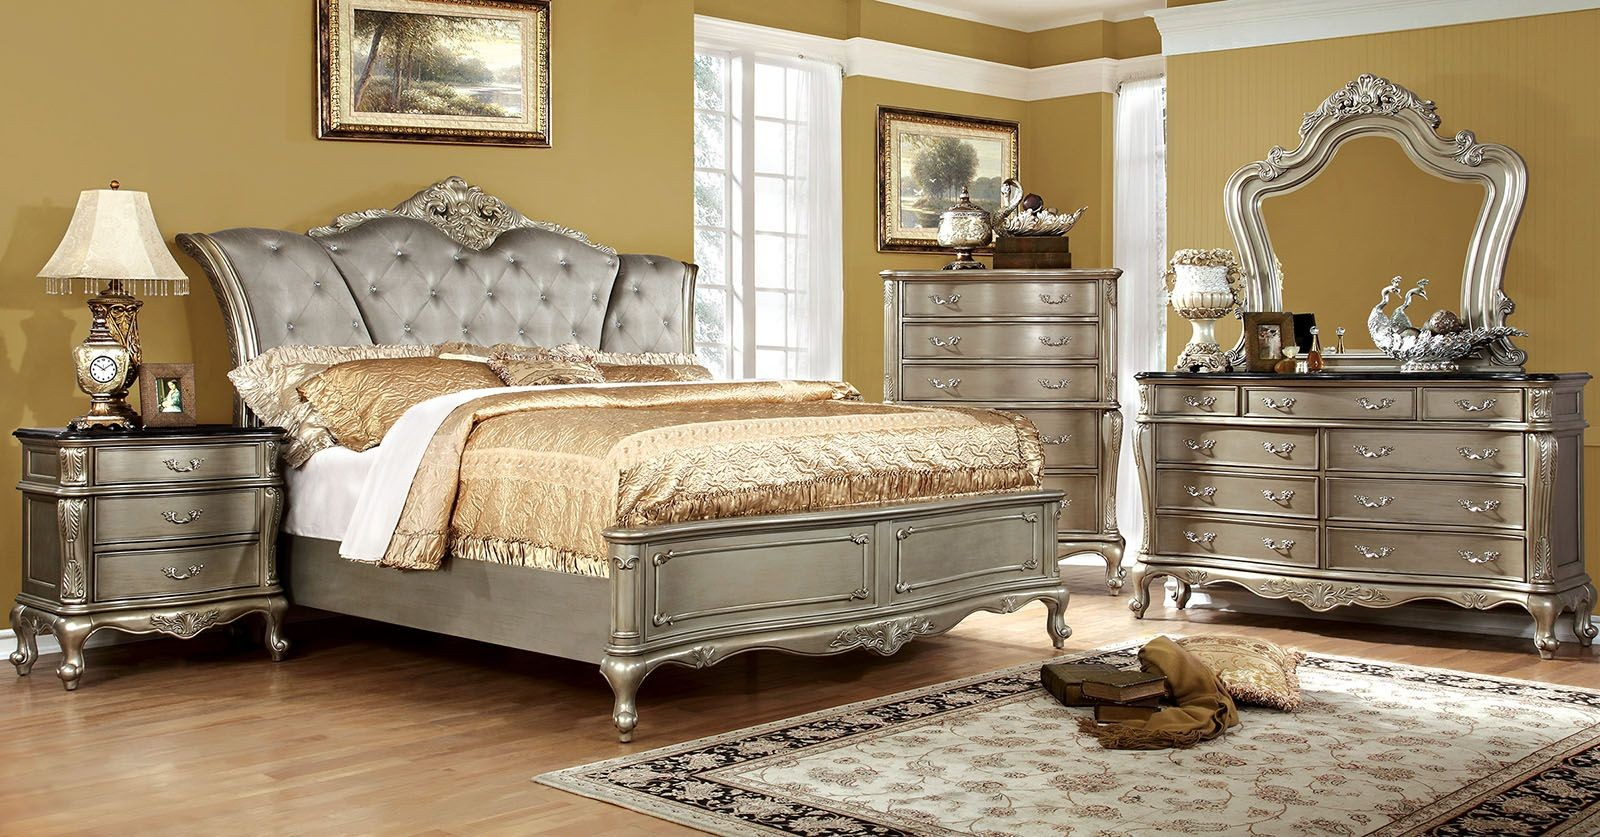 johara gold upholstered bedroom set from furniture of america coleman furniture. Black Bedroom Furniture Sets. Home Design Ideas